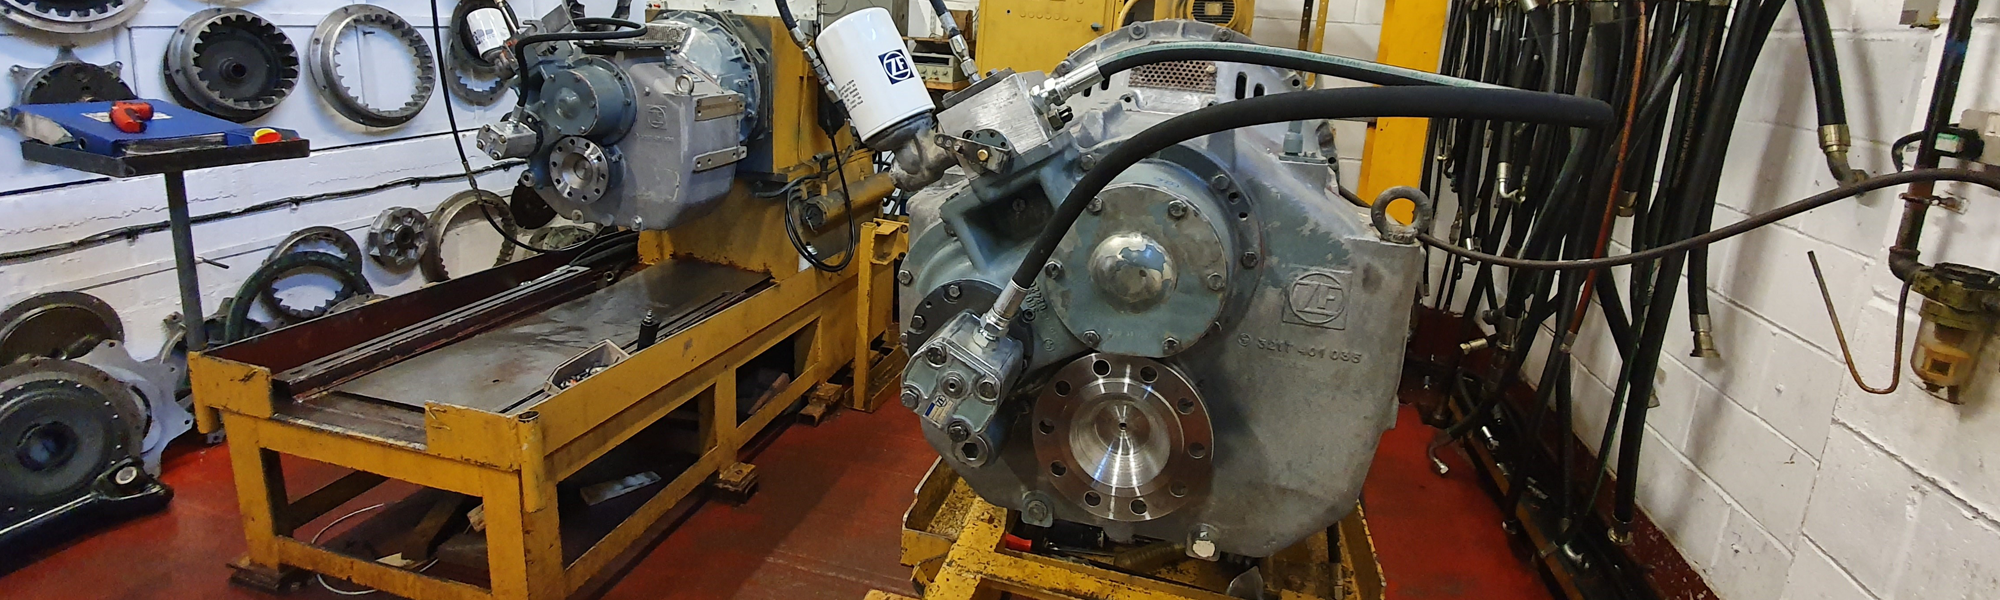 ZF Marine Gear Overhaul